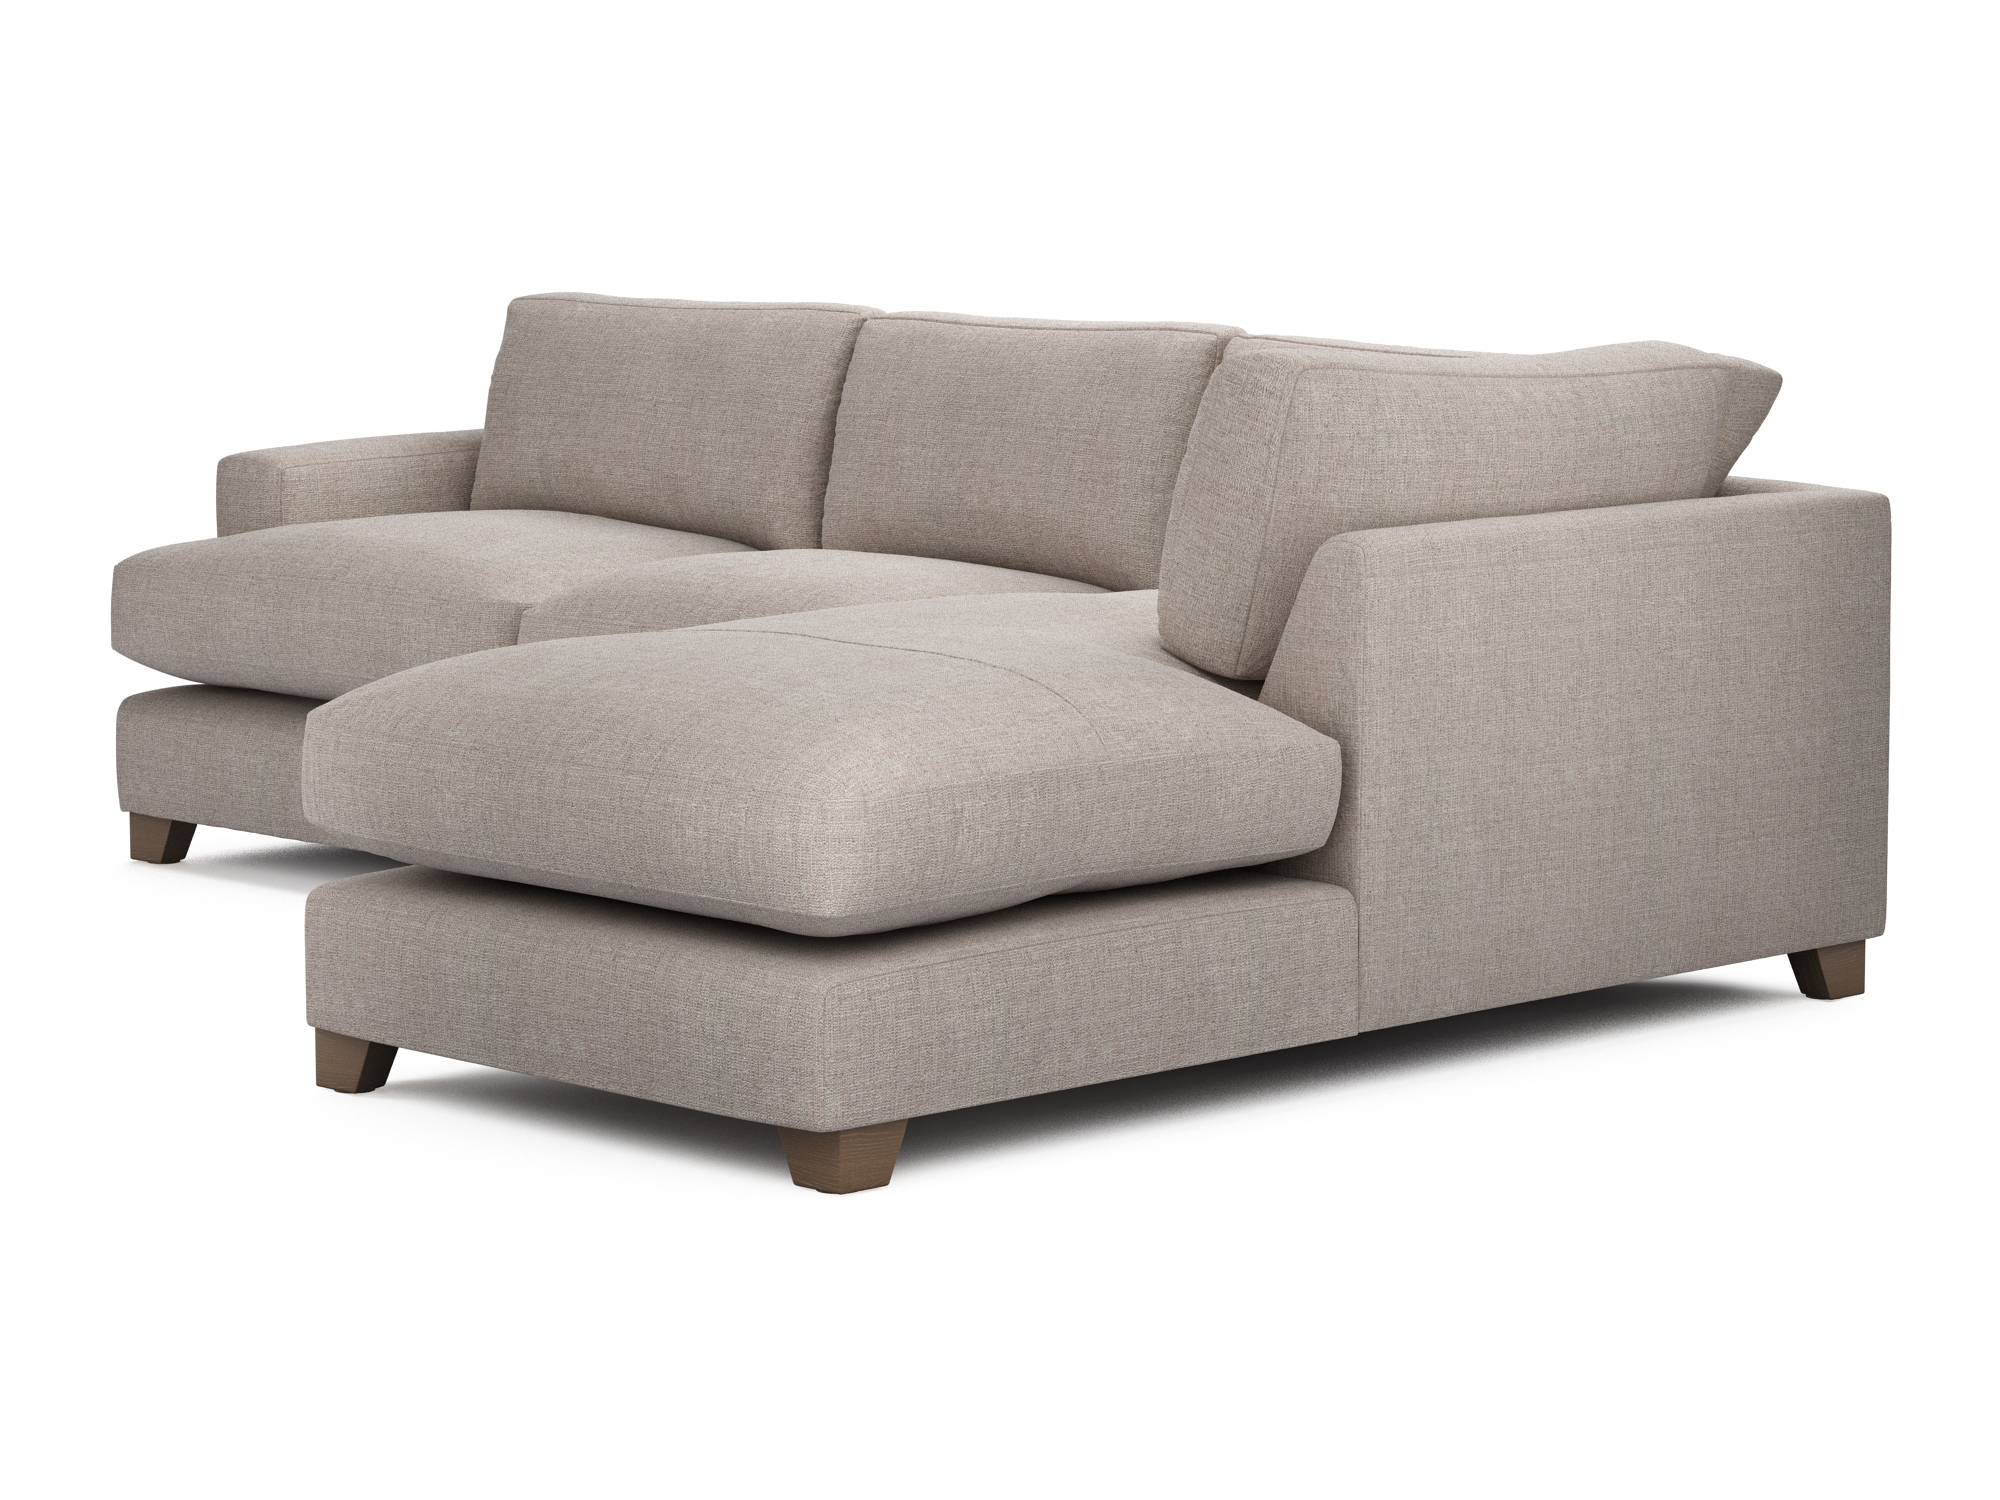 Lola Brown Sofa